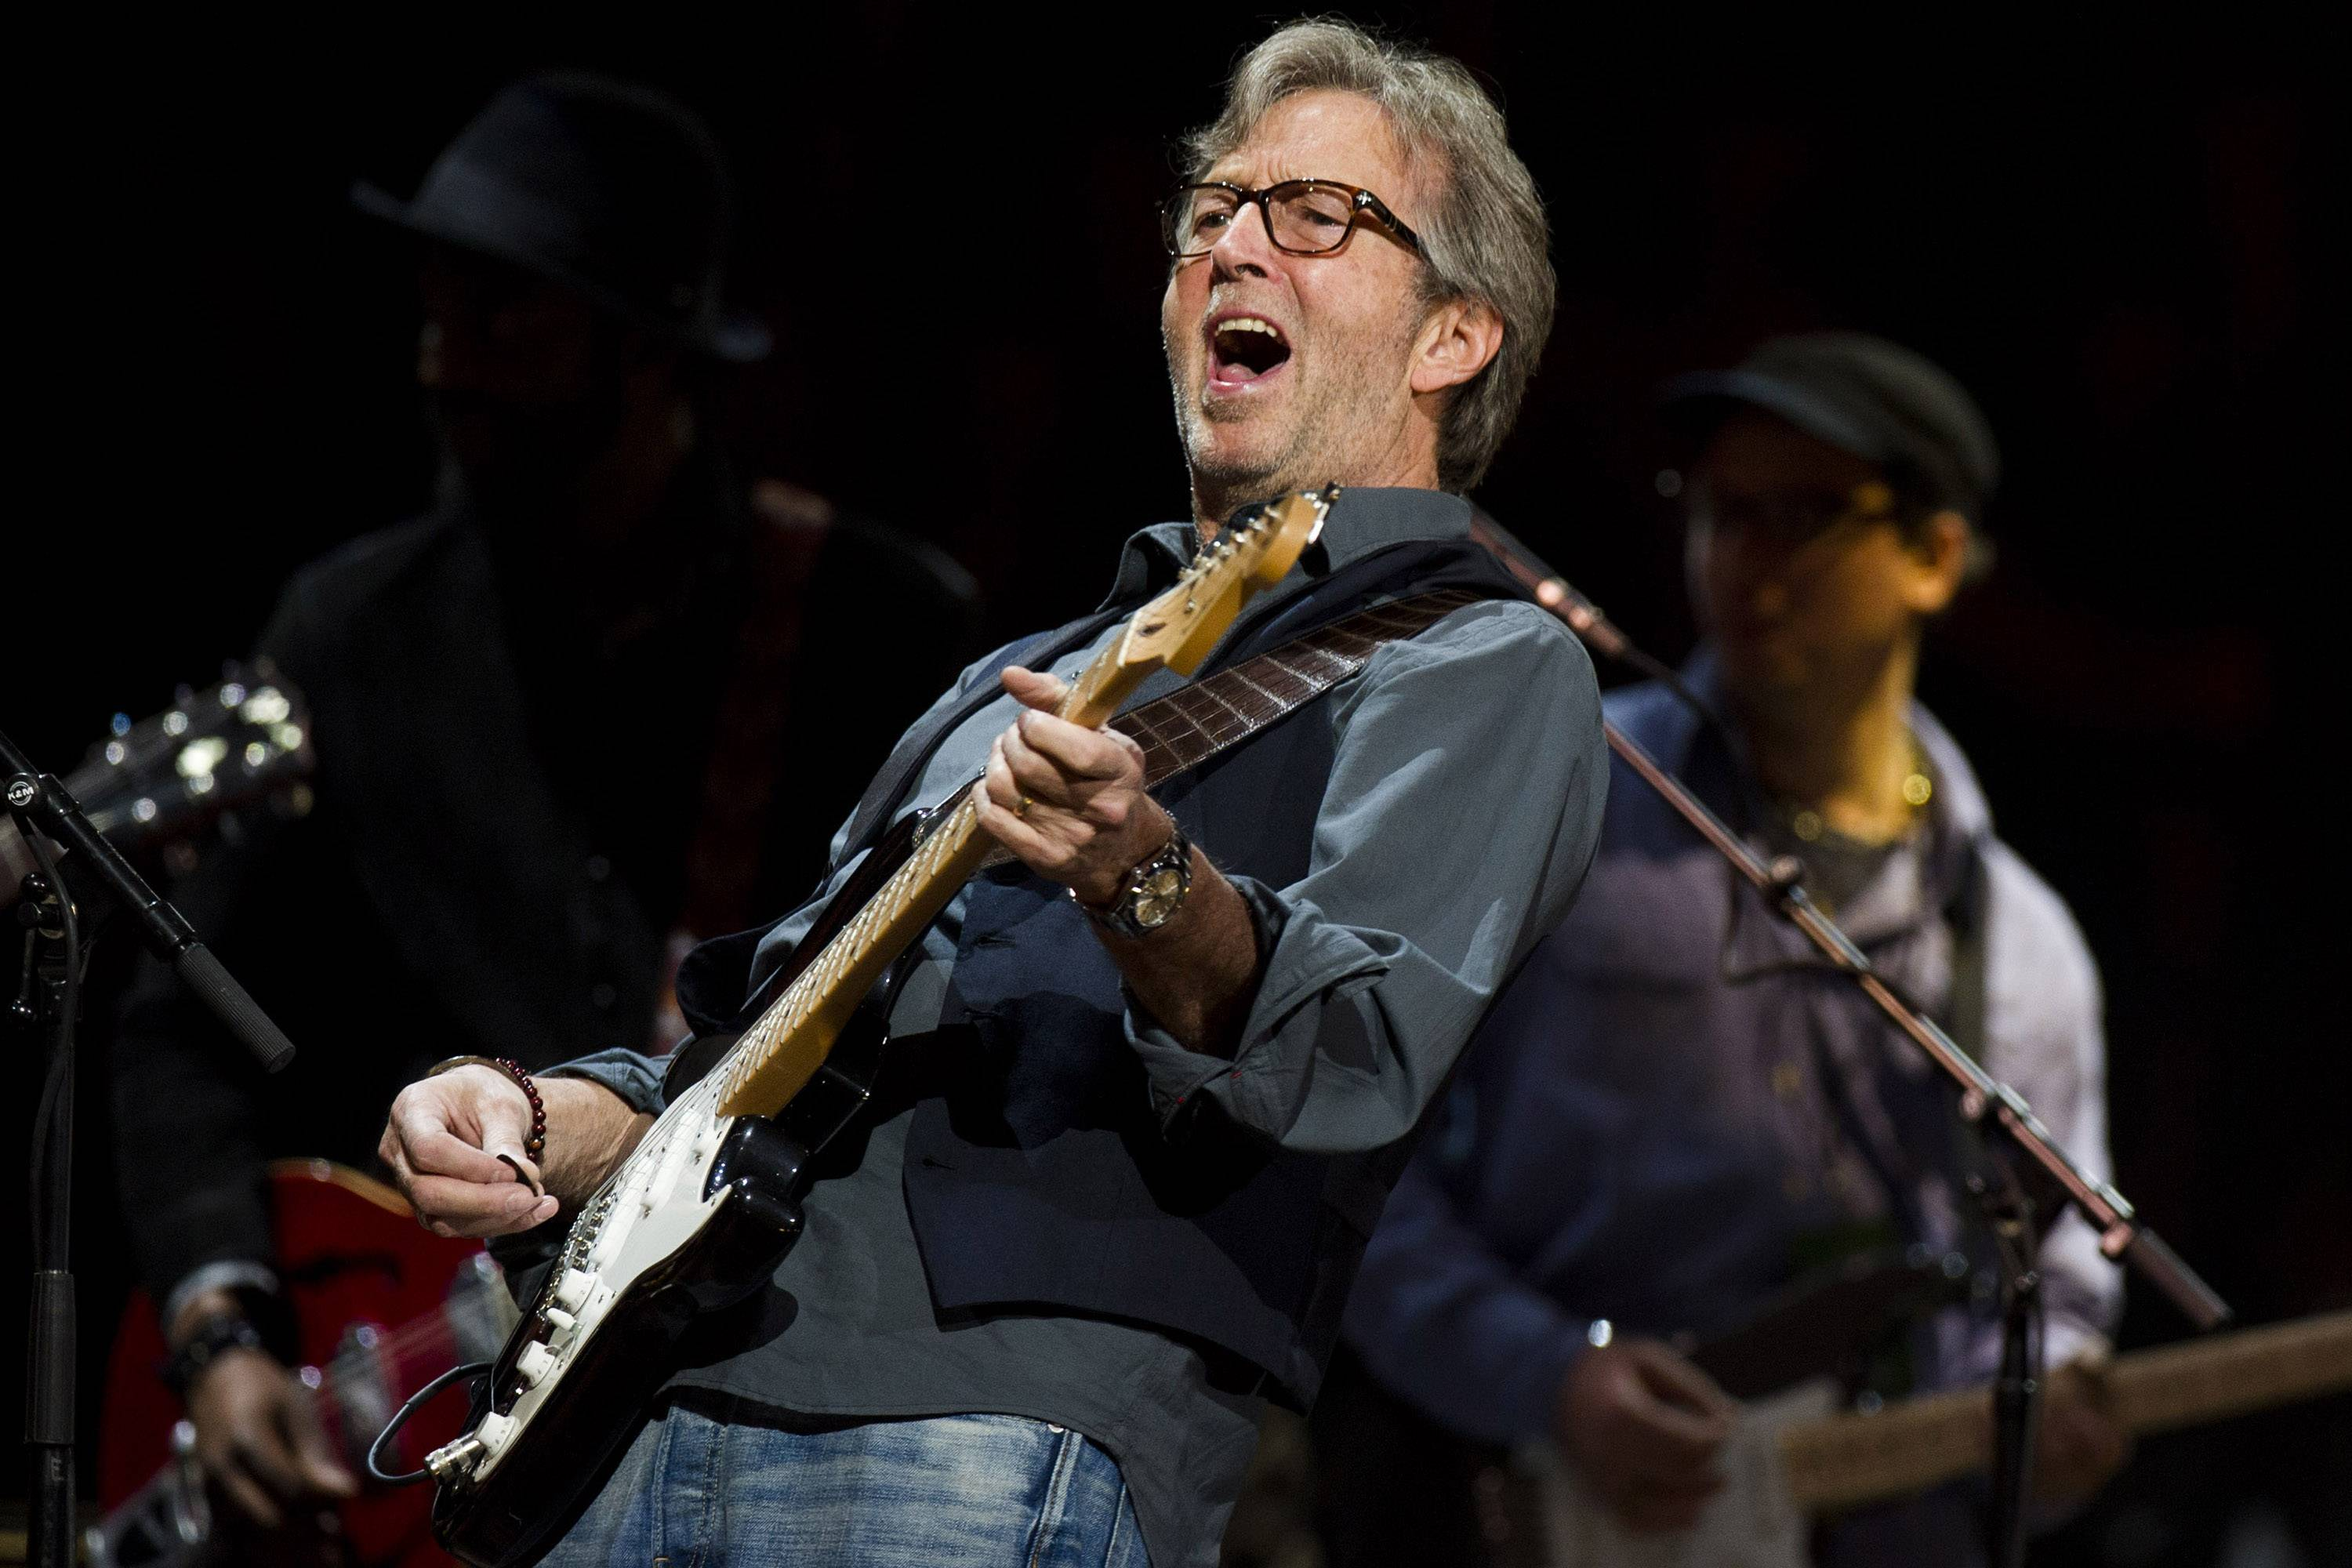 Eric Clapton performs at Madison Square Garden in New York. Clapton says singer-songwriter JJ Cale rescued him and gave him a direction.